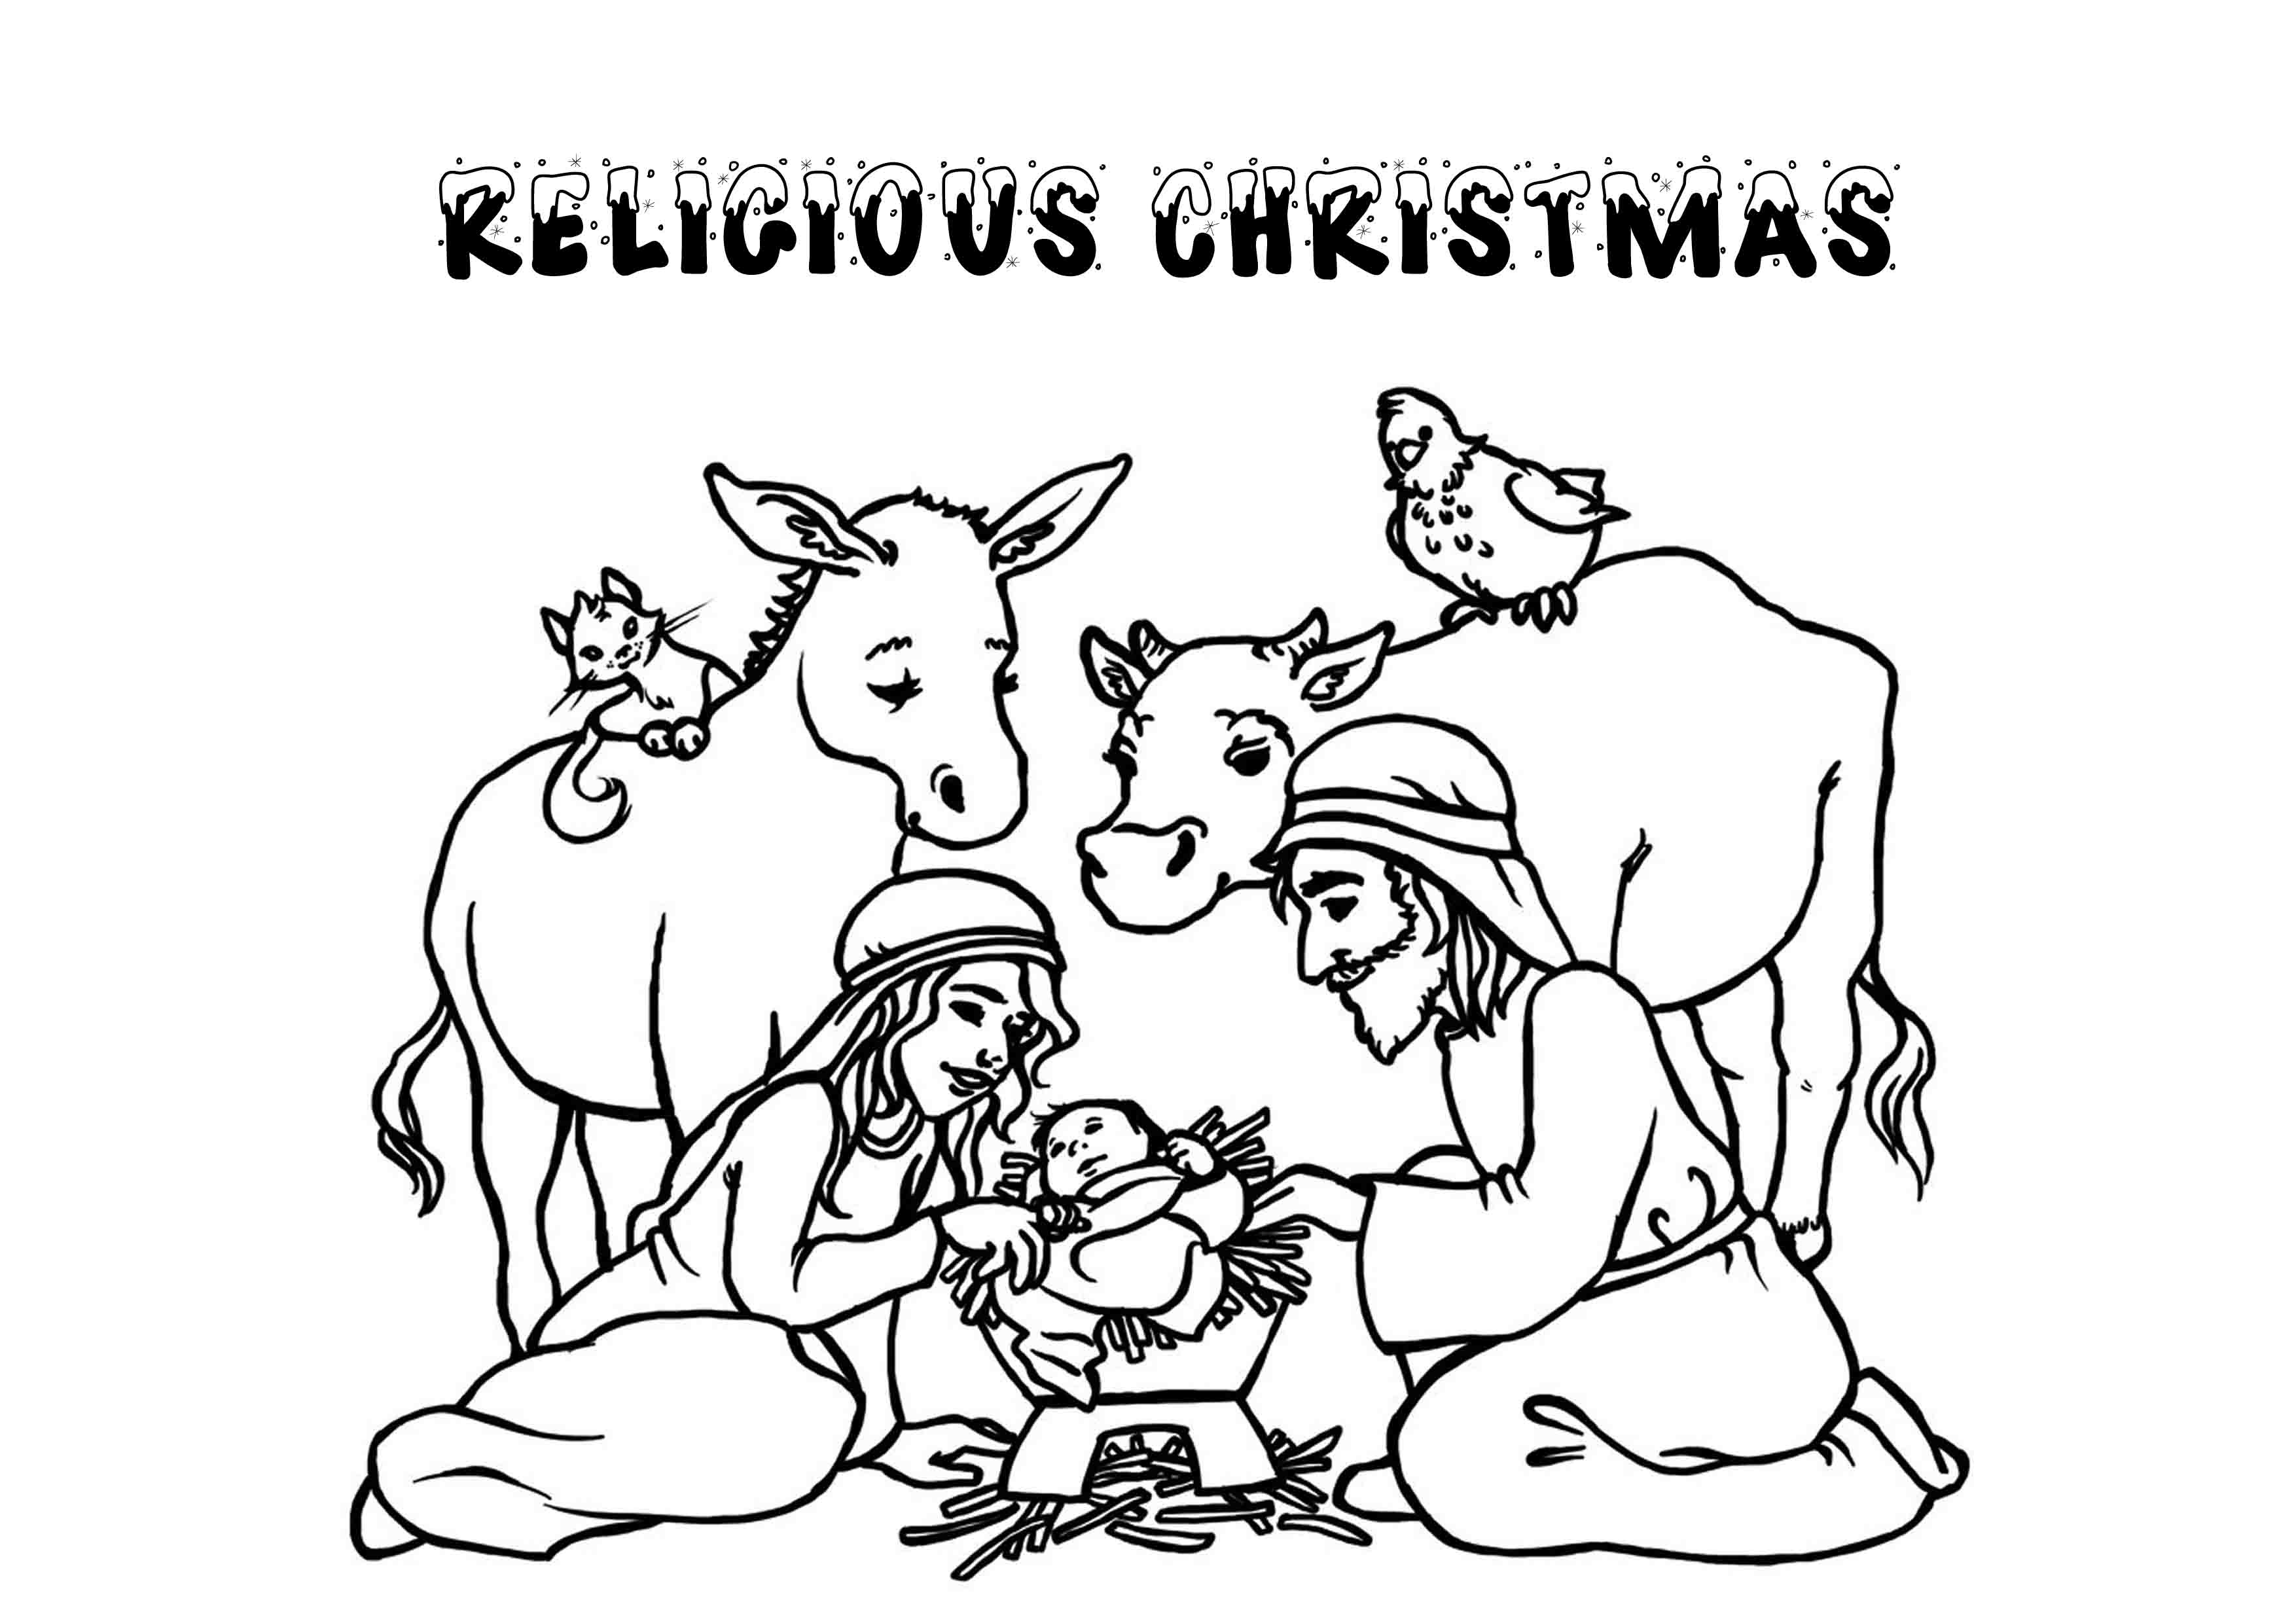 christmas coloring pages religious the philosopher39s wife 10 religious christmas coloring pages coloring religious christmas